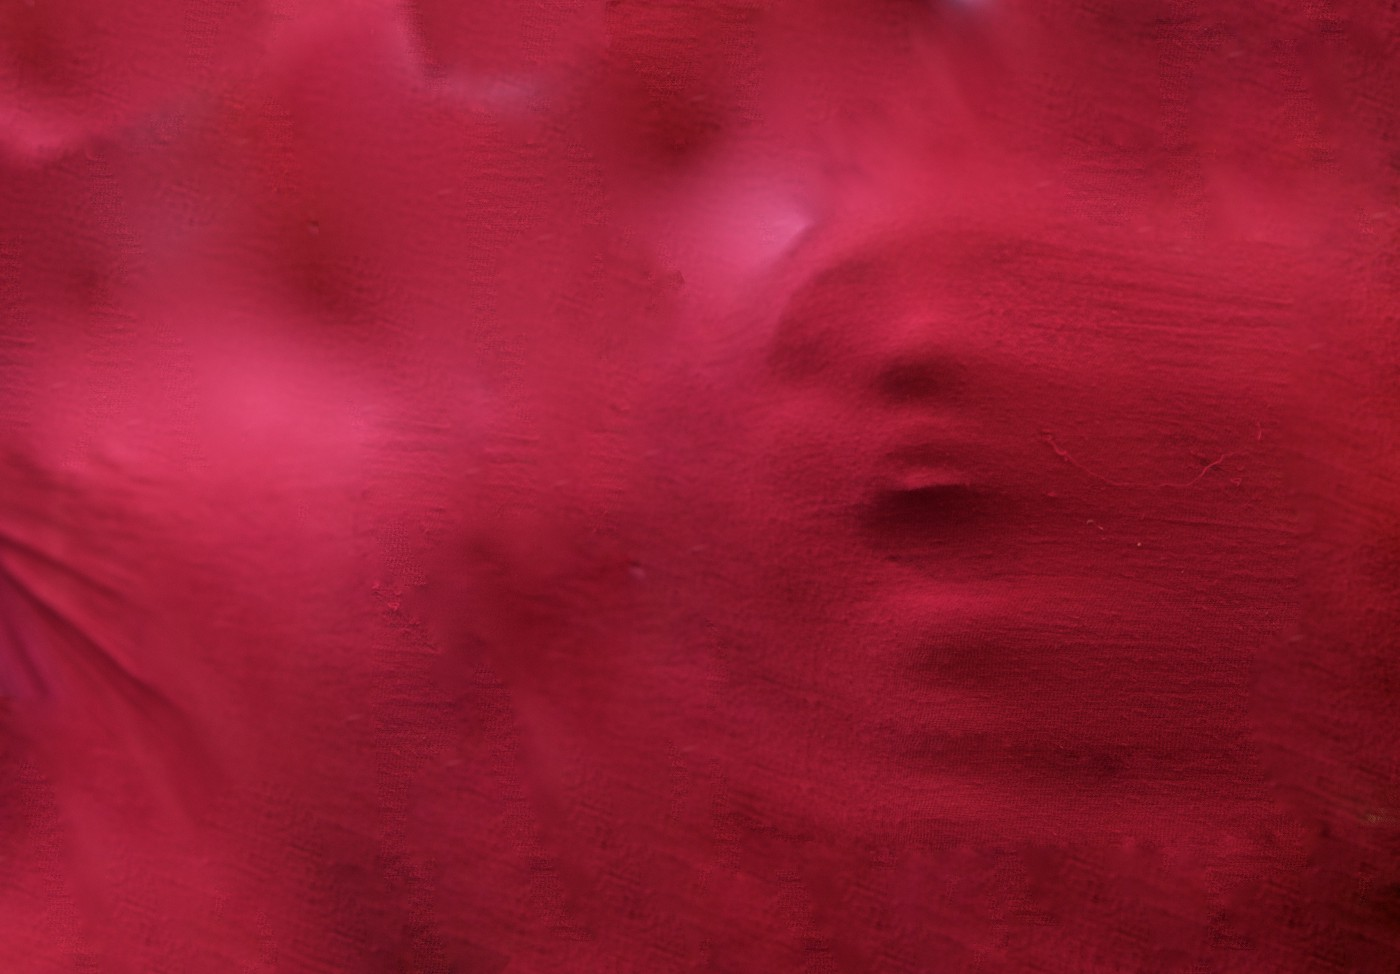 A screaming face coming through red fabric.